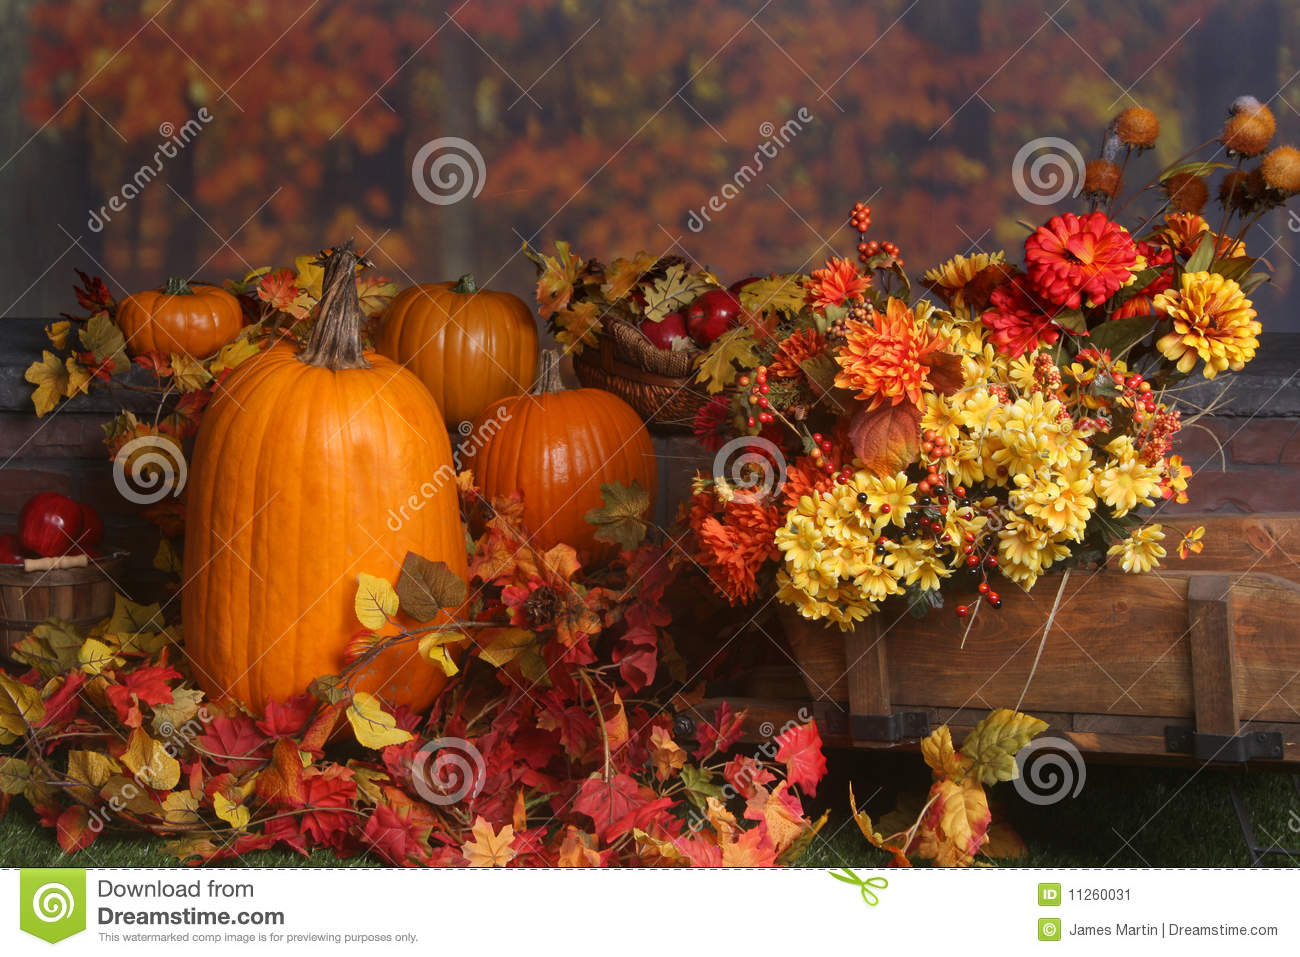 Fall Scenes Wallpaper With Pumpkins Fall Scene With Pumpkins And Colored Leaves Stock Image